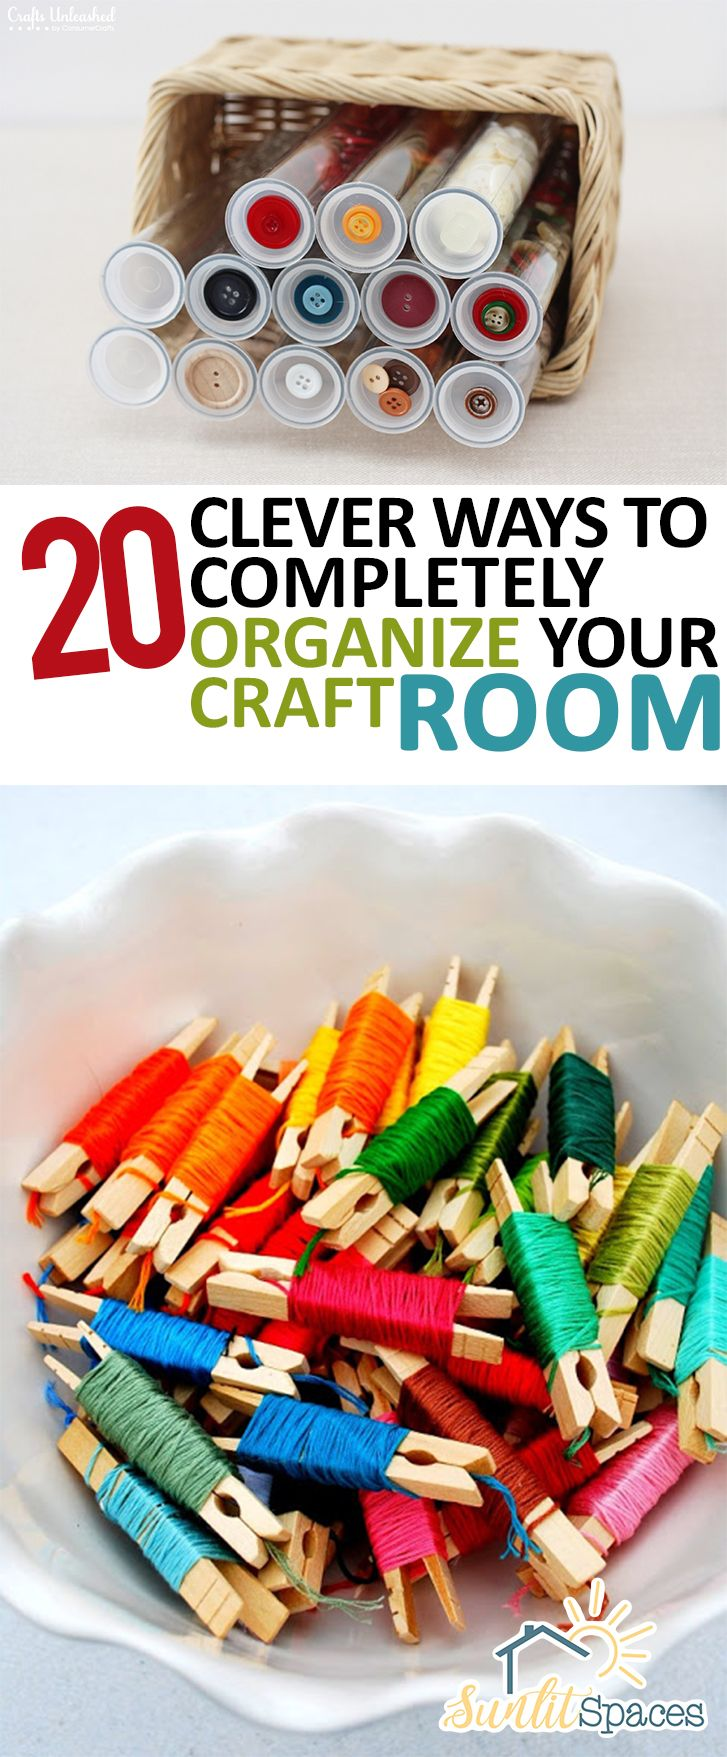 '20 Clever Ways to Completely Organize Your Craft Room...!' (via sunlitspaces.com)